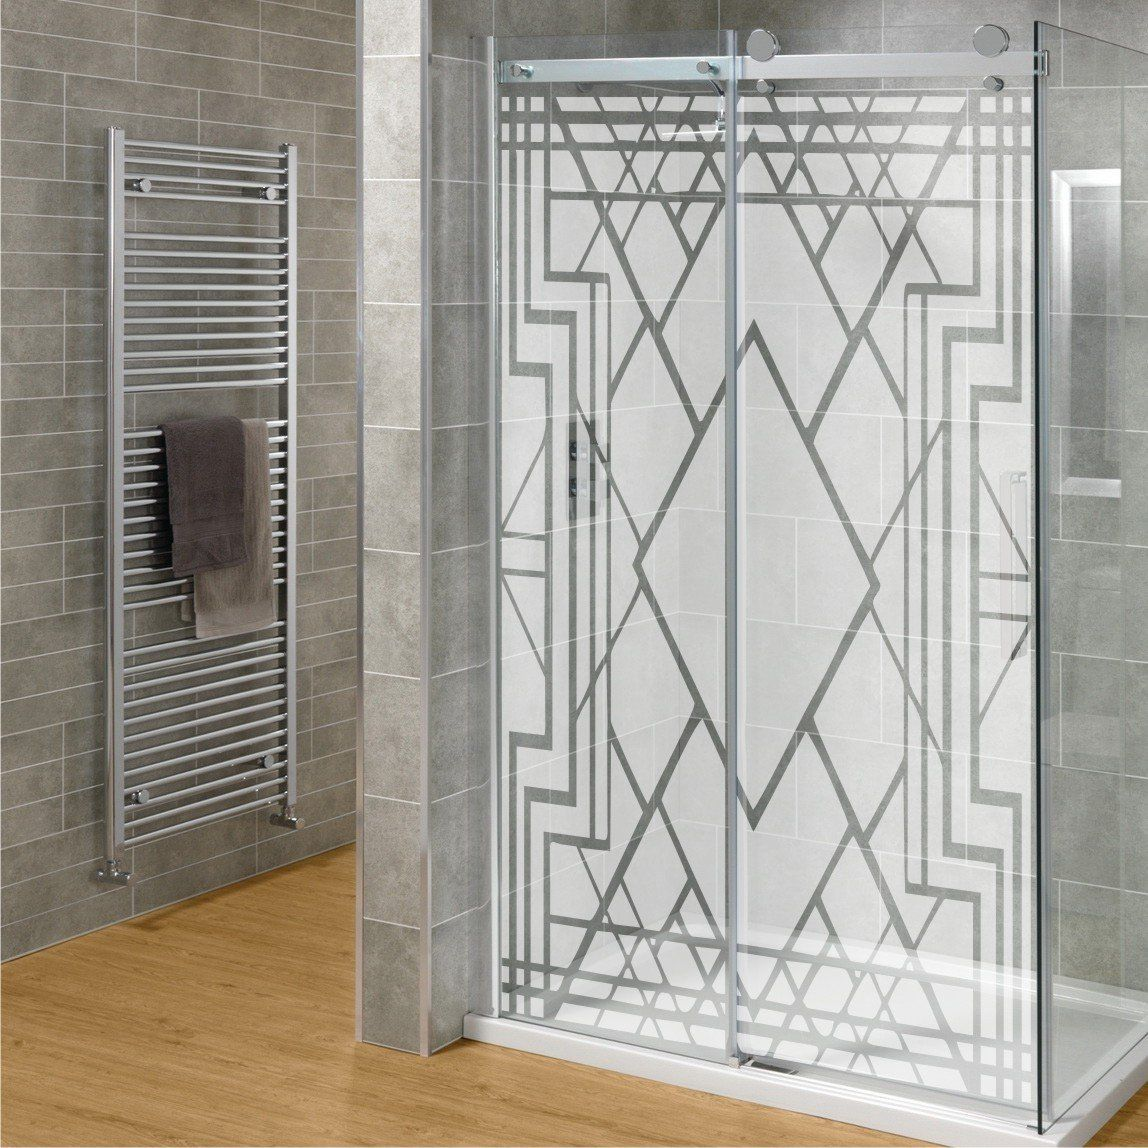 Amazon com diy etched glass shower door set art deco design by miss decal inc prints